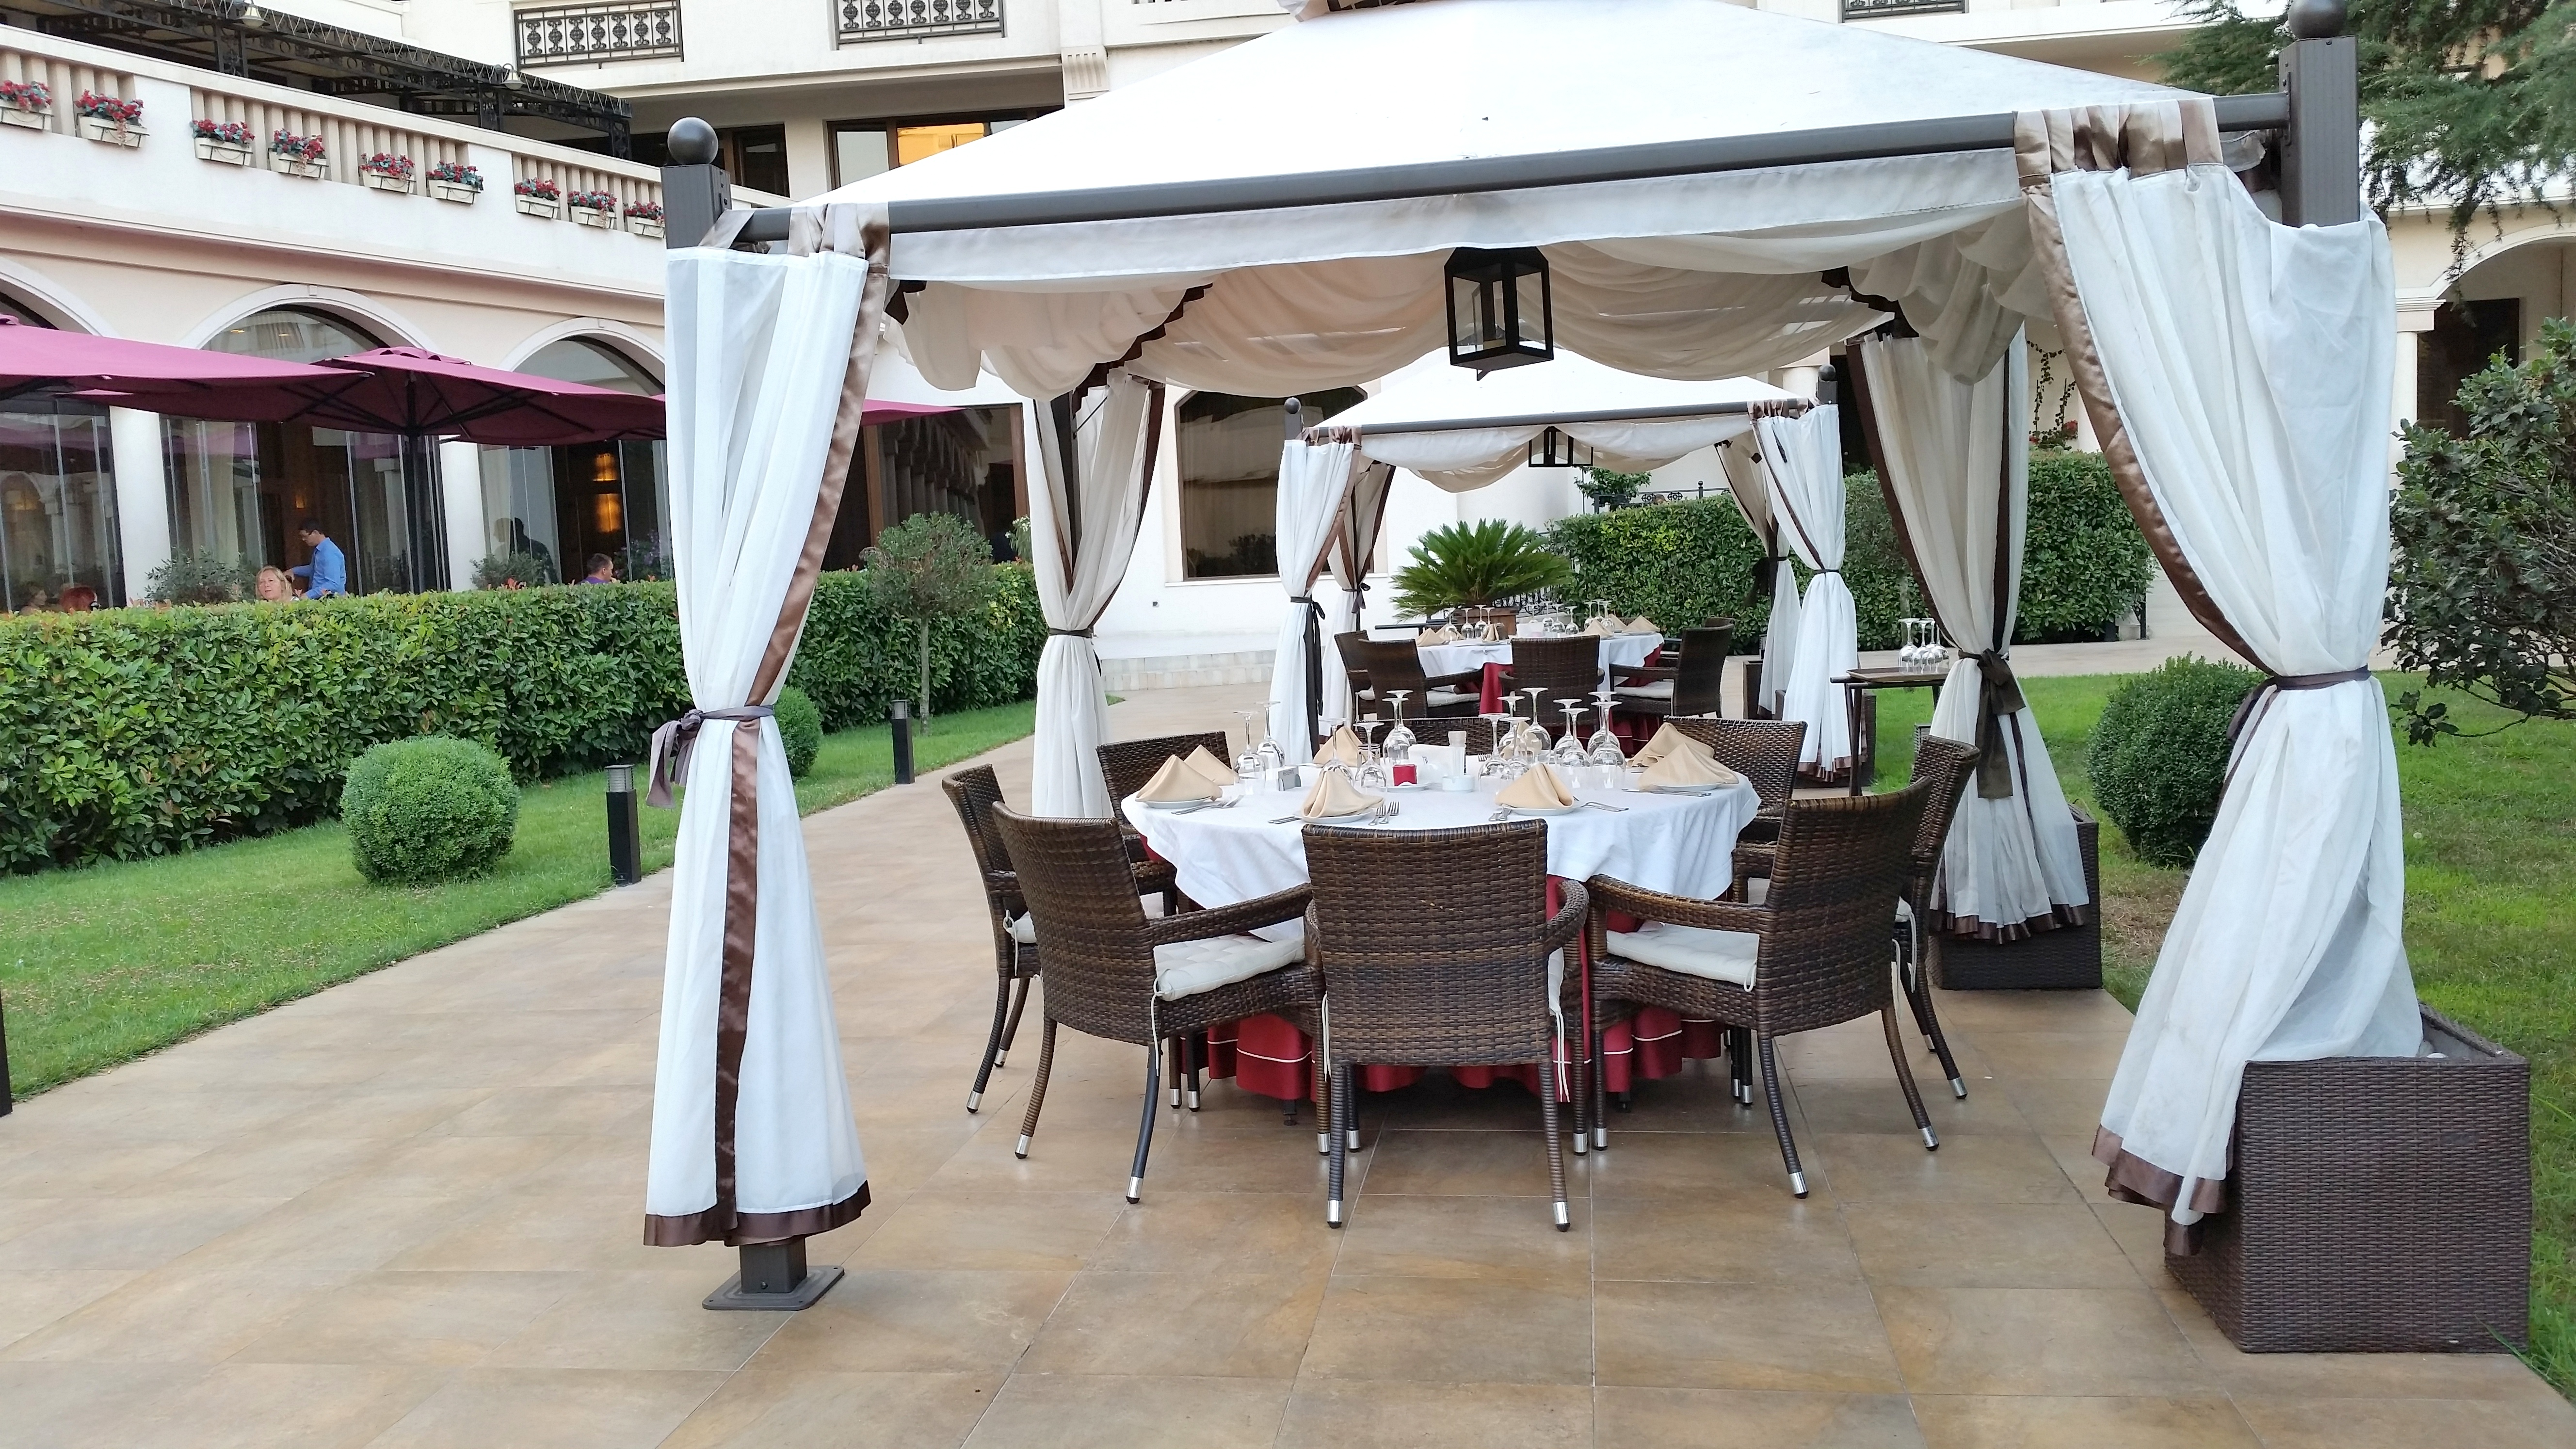 Cozy tables under the white gazebos at Salini by placescases.com